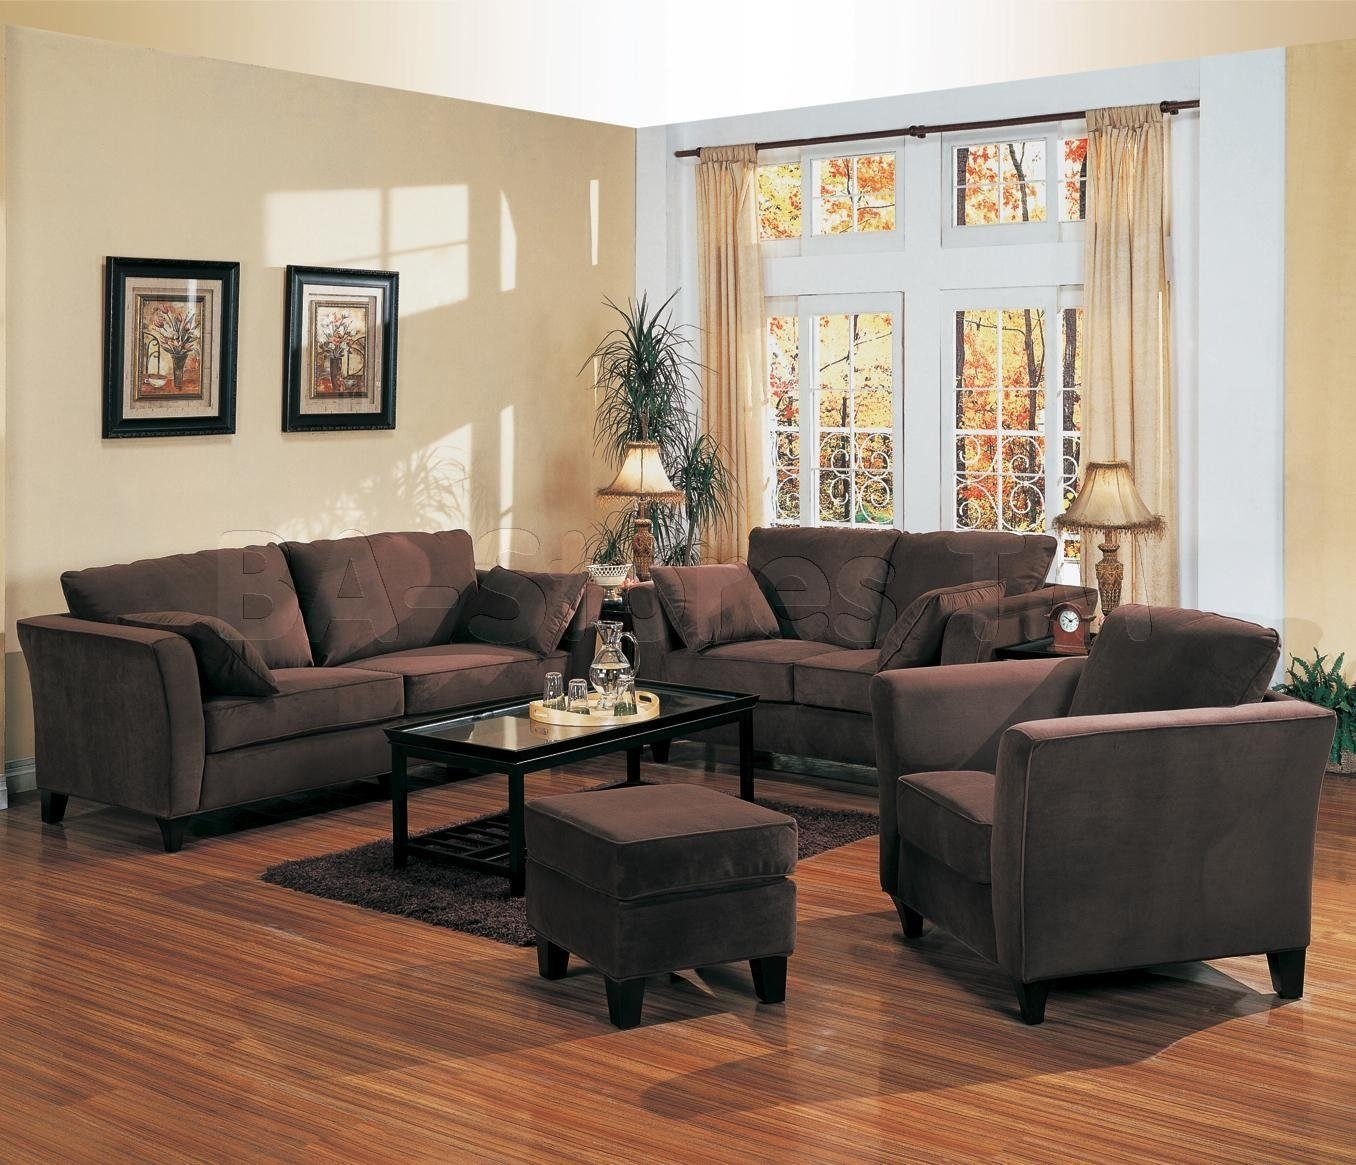 10 Unique Paint For Living Room Ideas family room decorating ideas pinterest living room design ideas for 2020